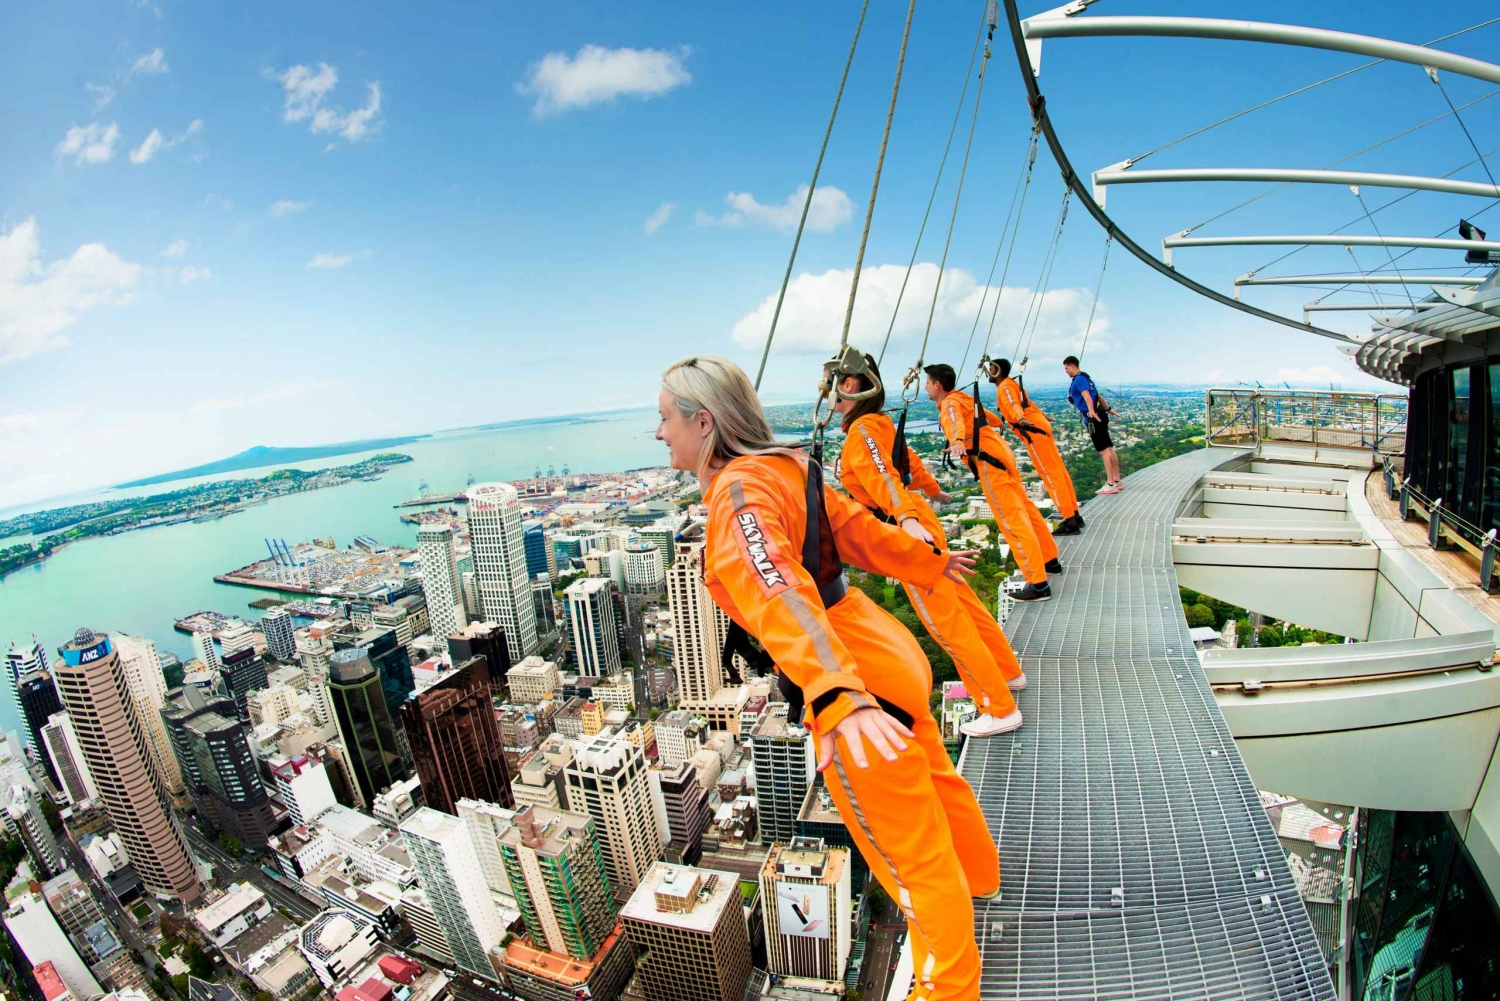 SkyWalk Auckland with Sky Tower Entry Ticket